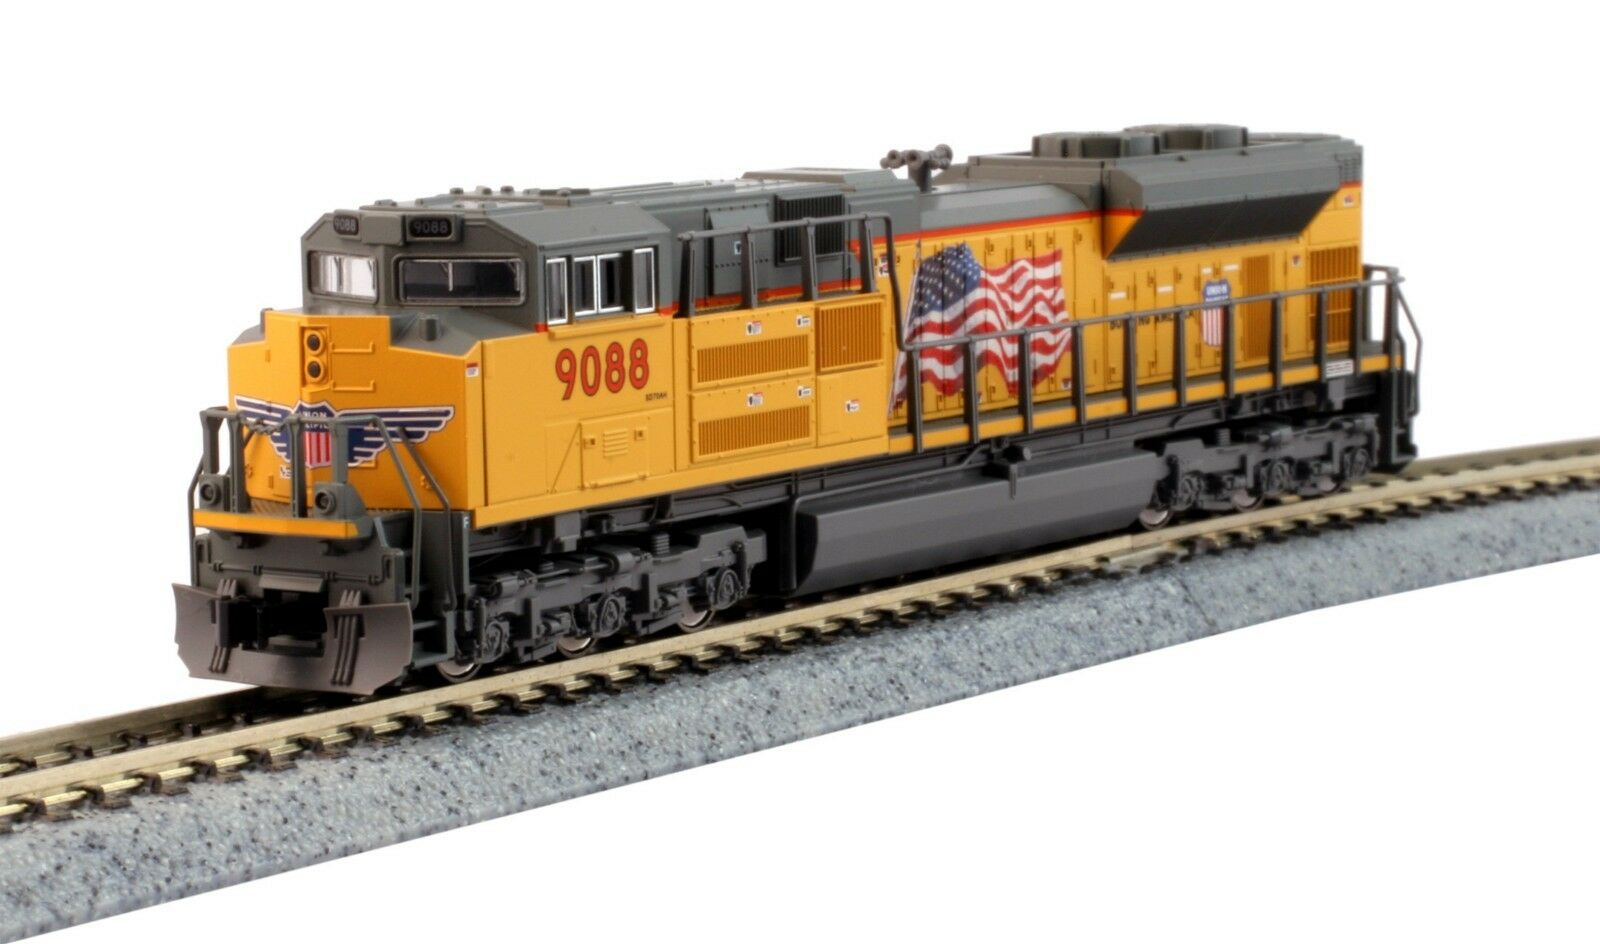 Escala N-Kato 176-8522 Locomotora de Union Pacific SD70ACe  9088 Dcc Listo